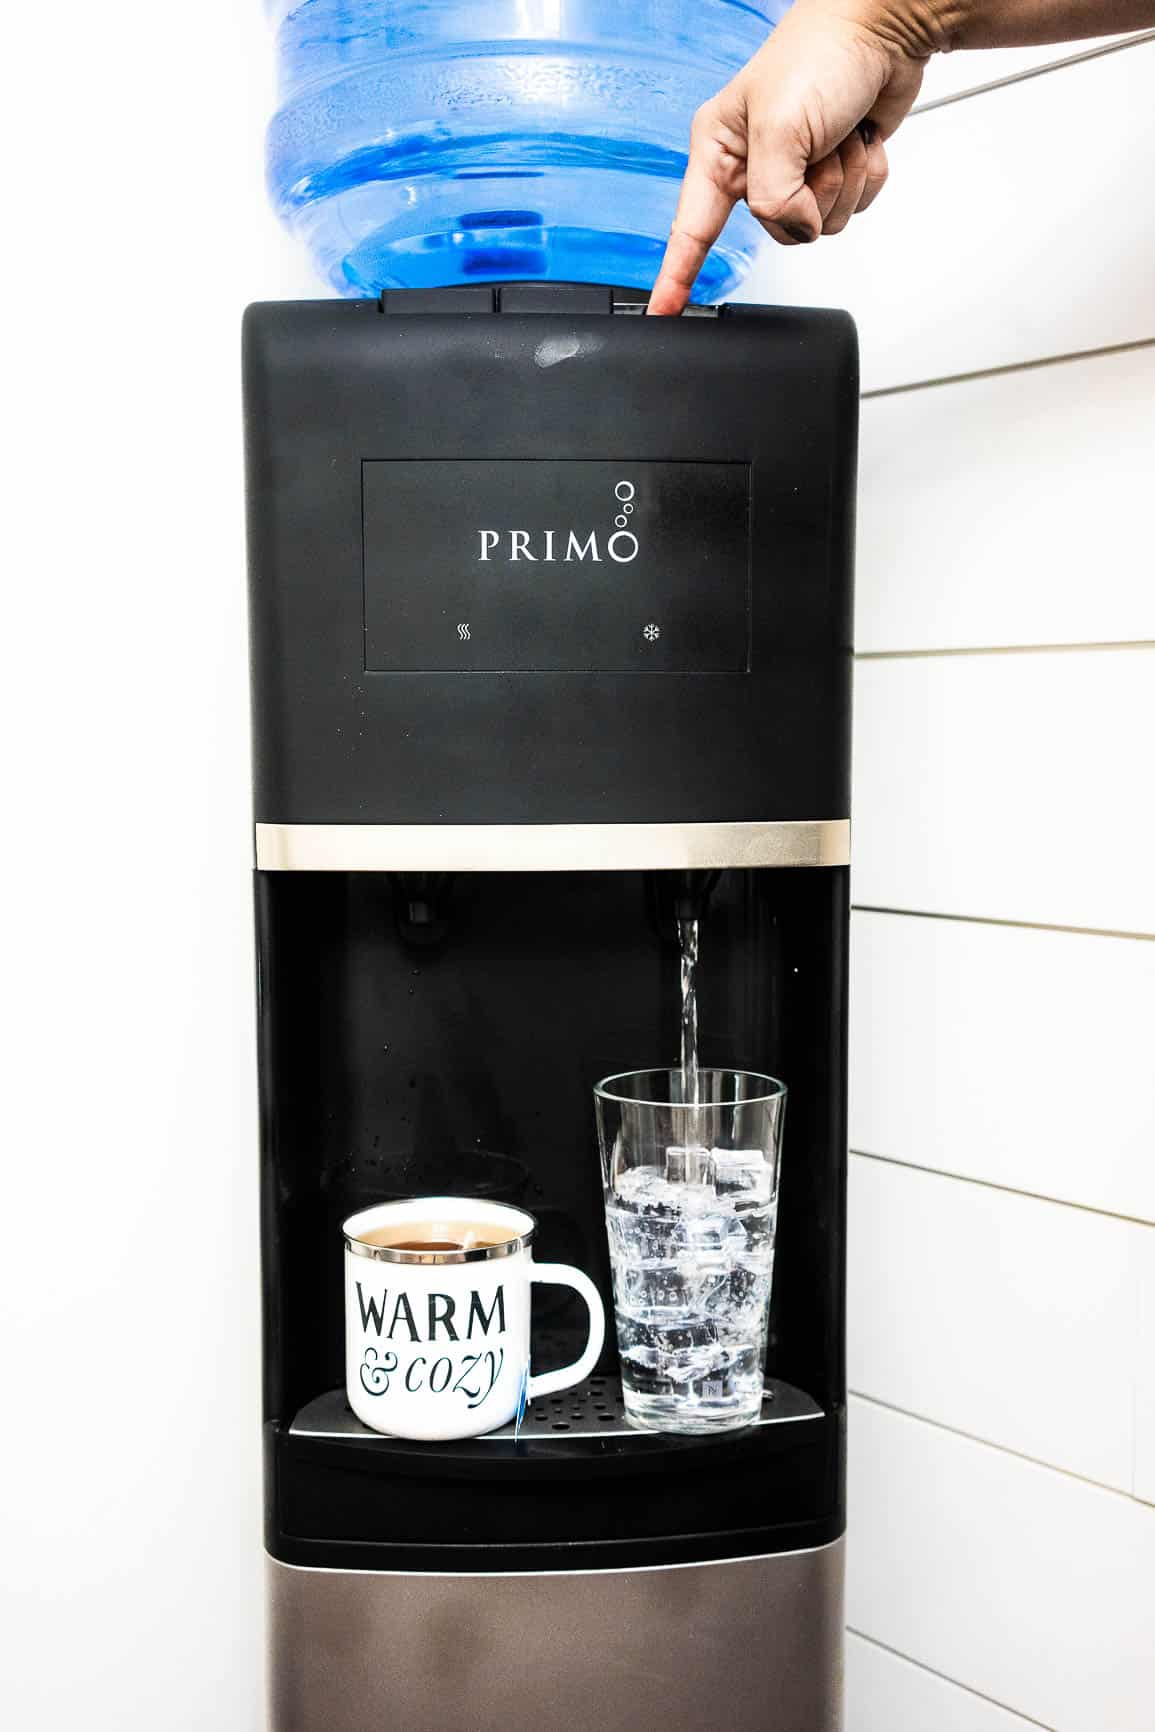 Healthiest Drinking Water for Dogs with PRIMO WATER